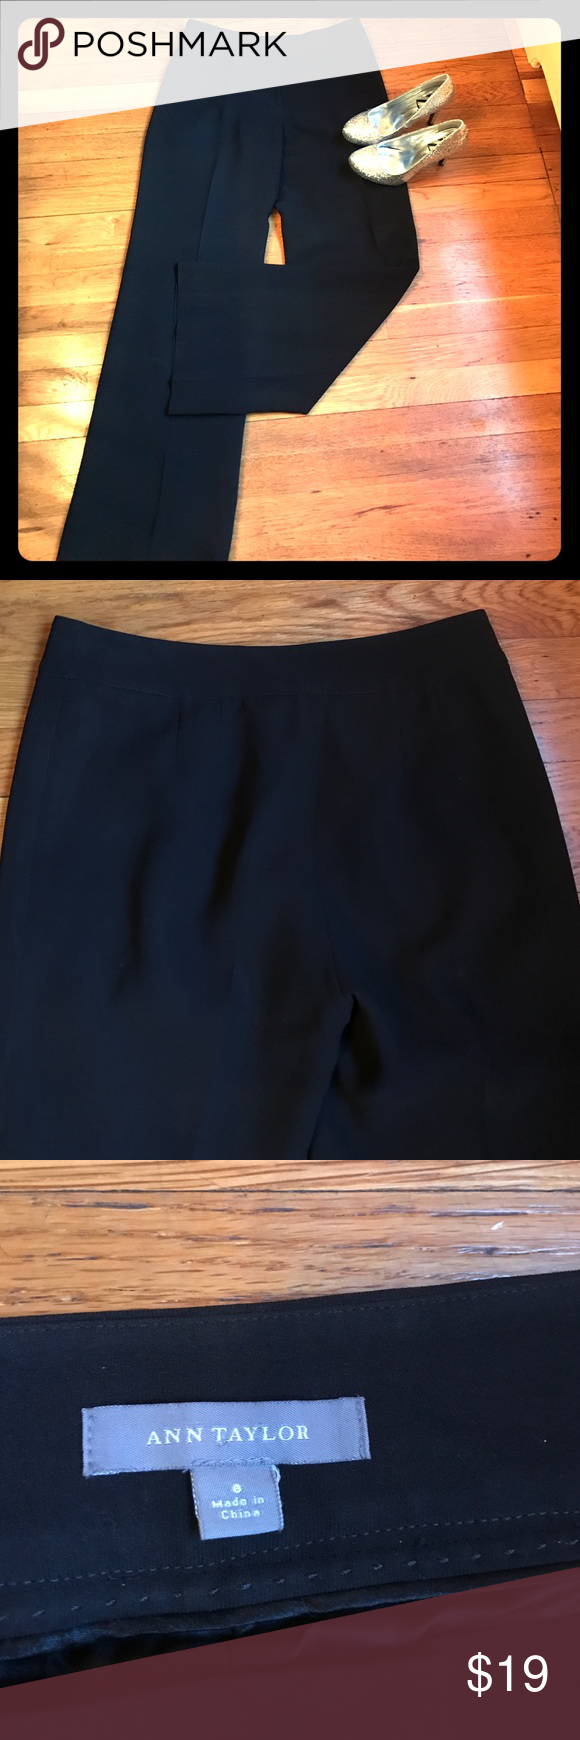 Ann Taylor Black Work Trousers Very stylish and chic, perfect for work! Has pleats in the back, see picture 2. Excellent condition. Ann Taylor Pants Trousers